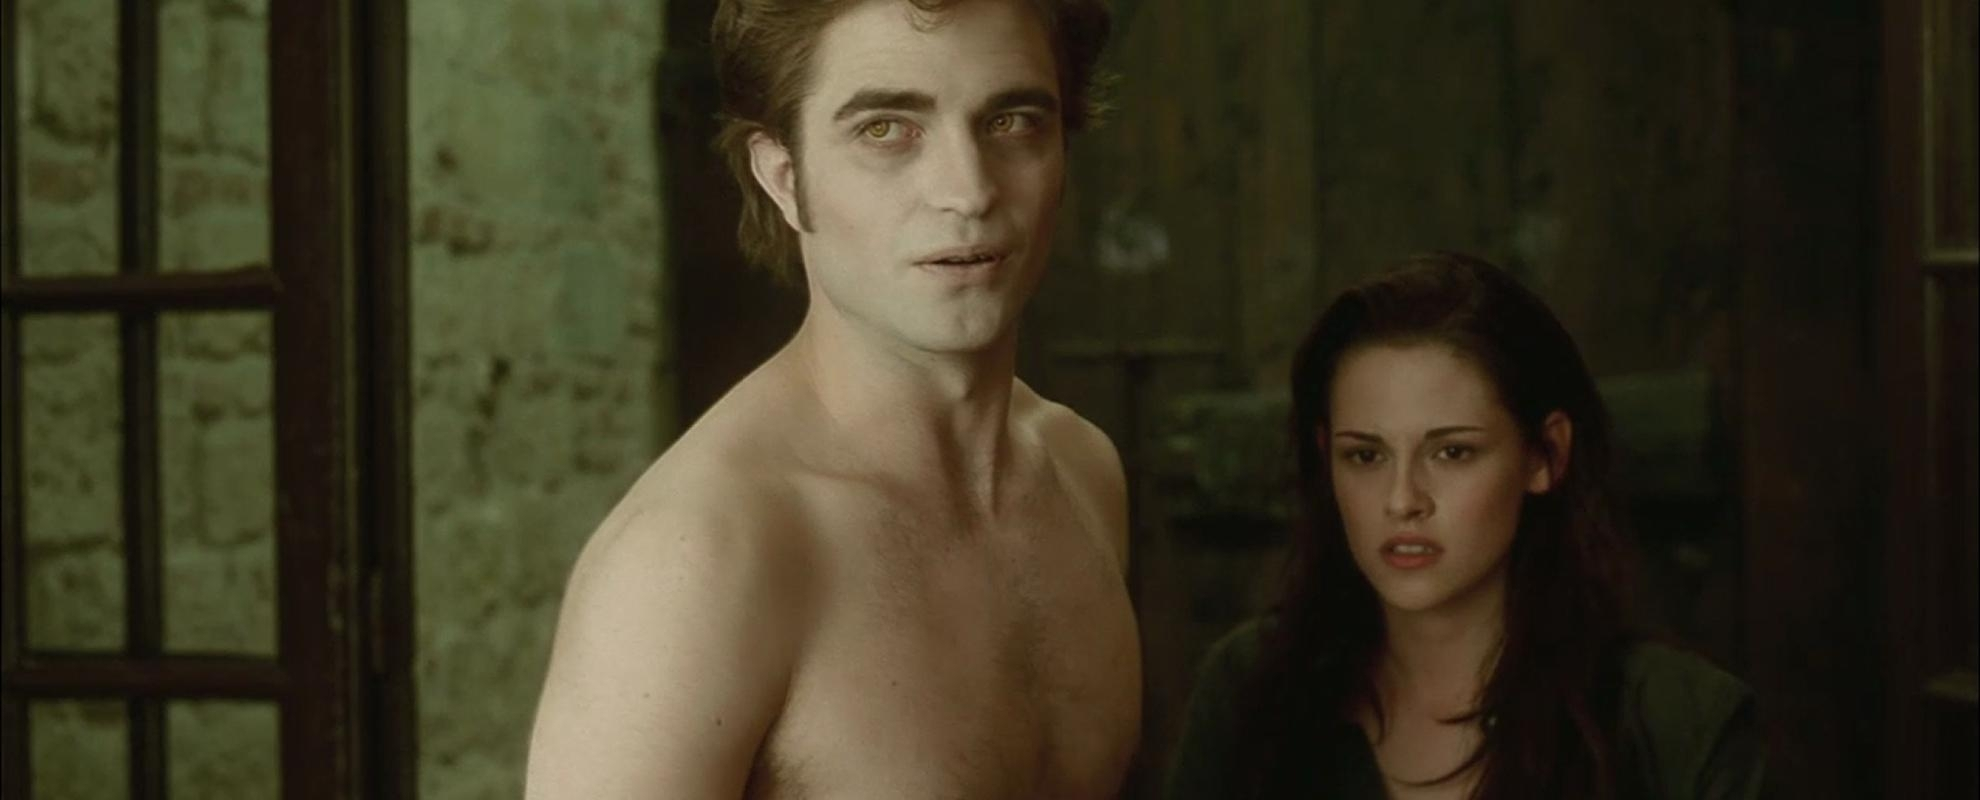 New moon trailer screencaps